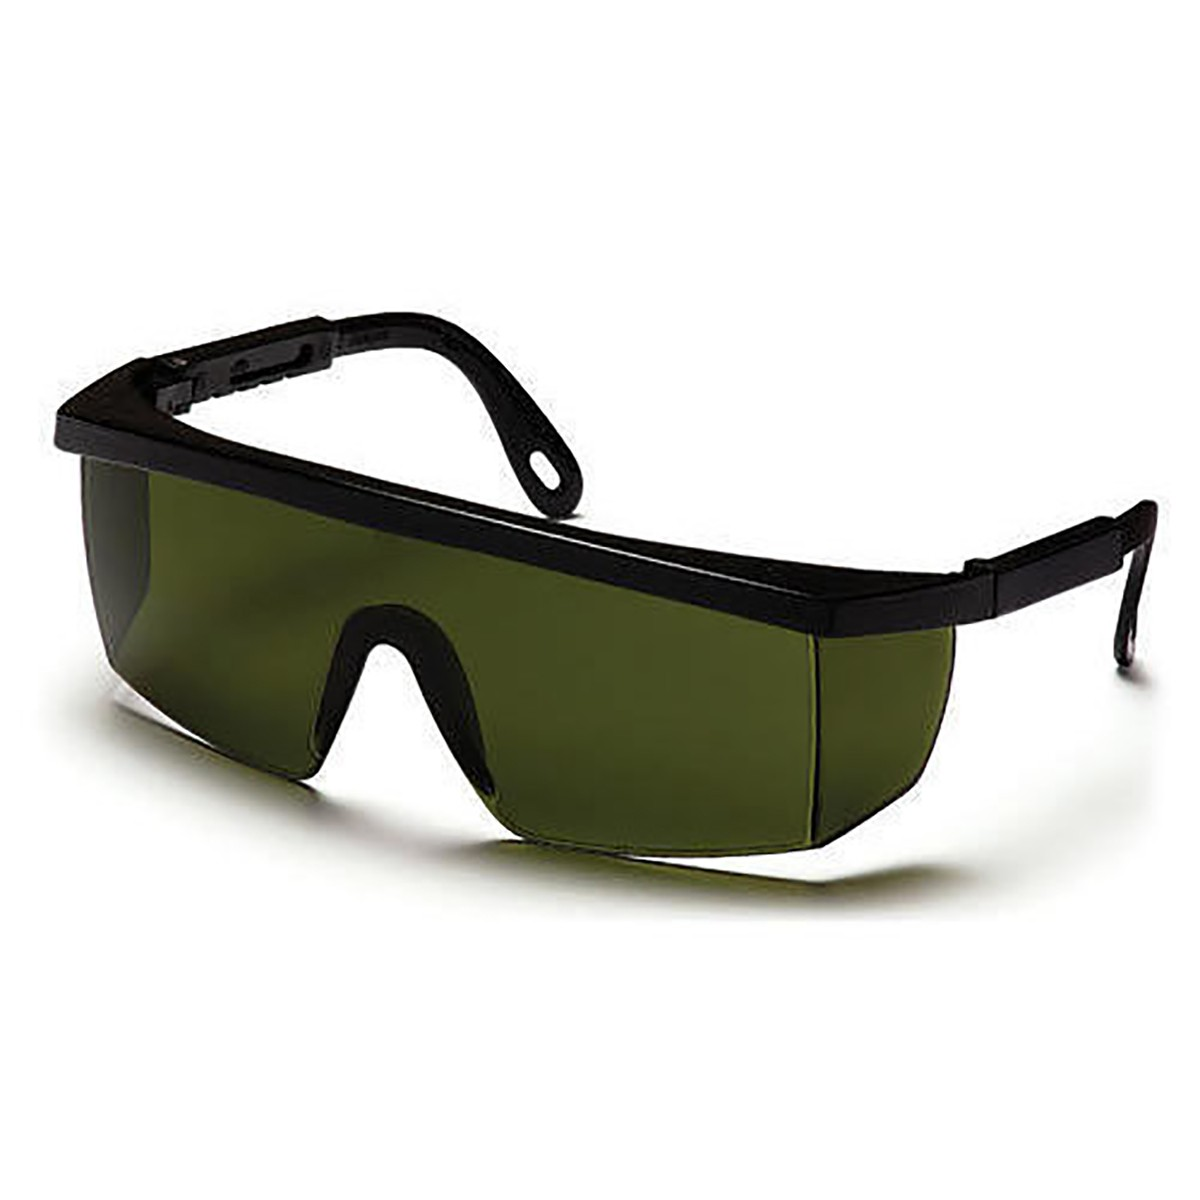 safetly/ welding goggles.